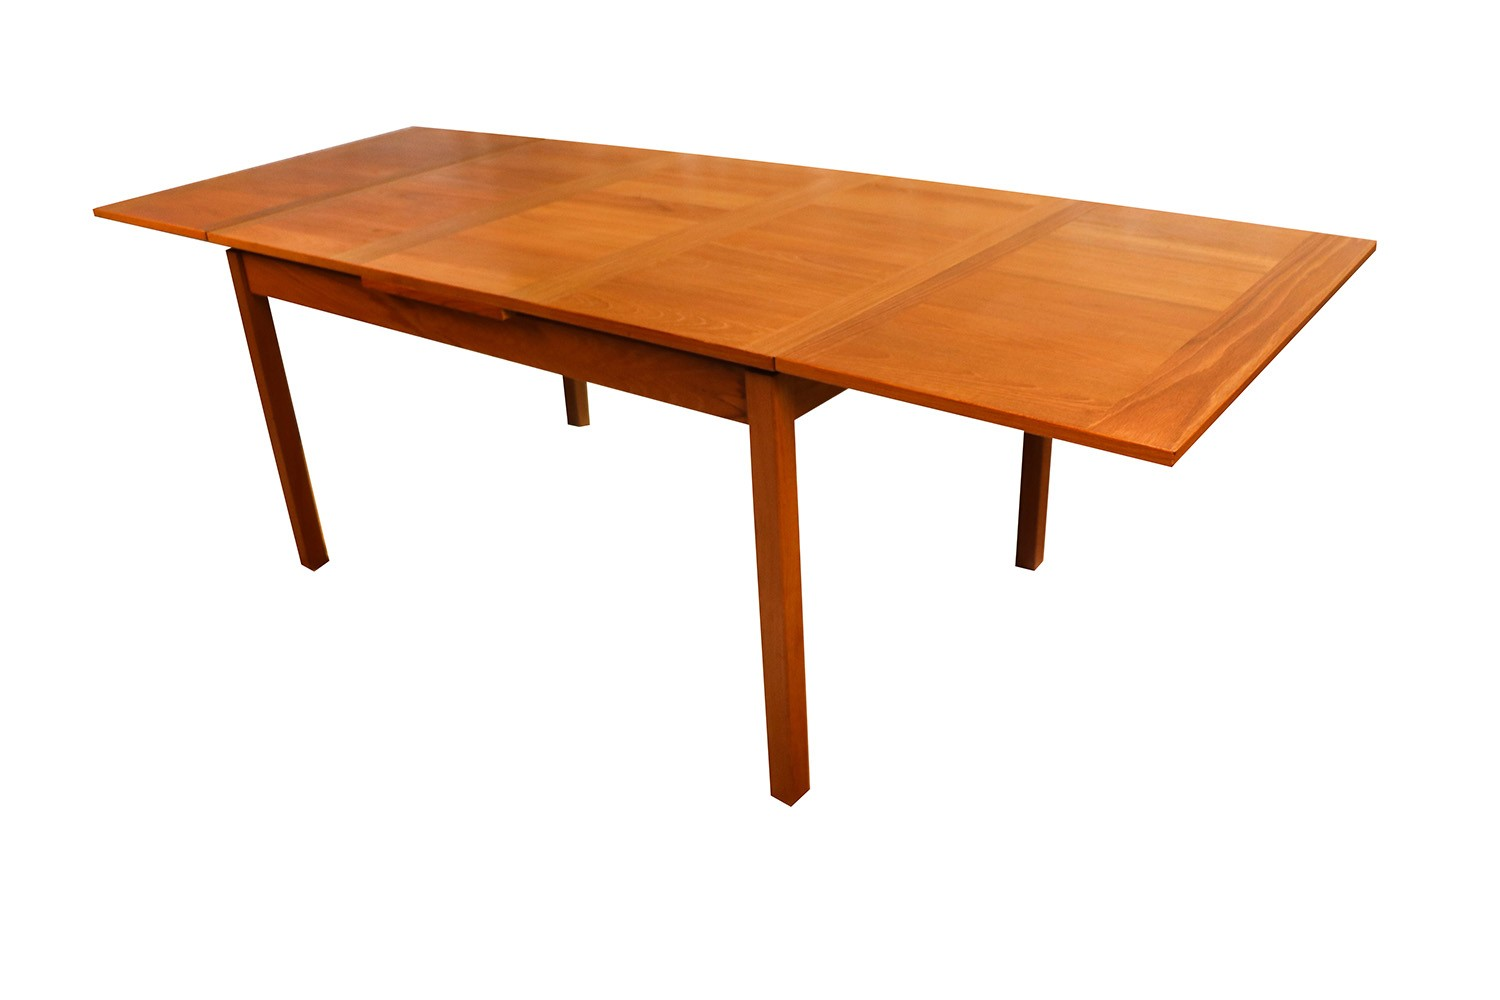 Modern Extending Dining Table Danish Modern Teak Extendable Dining Table Vejle Stole